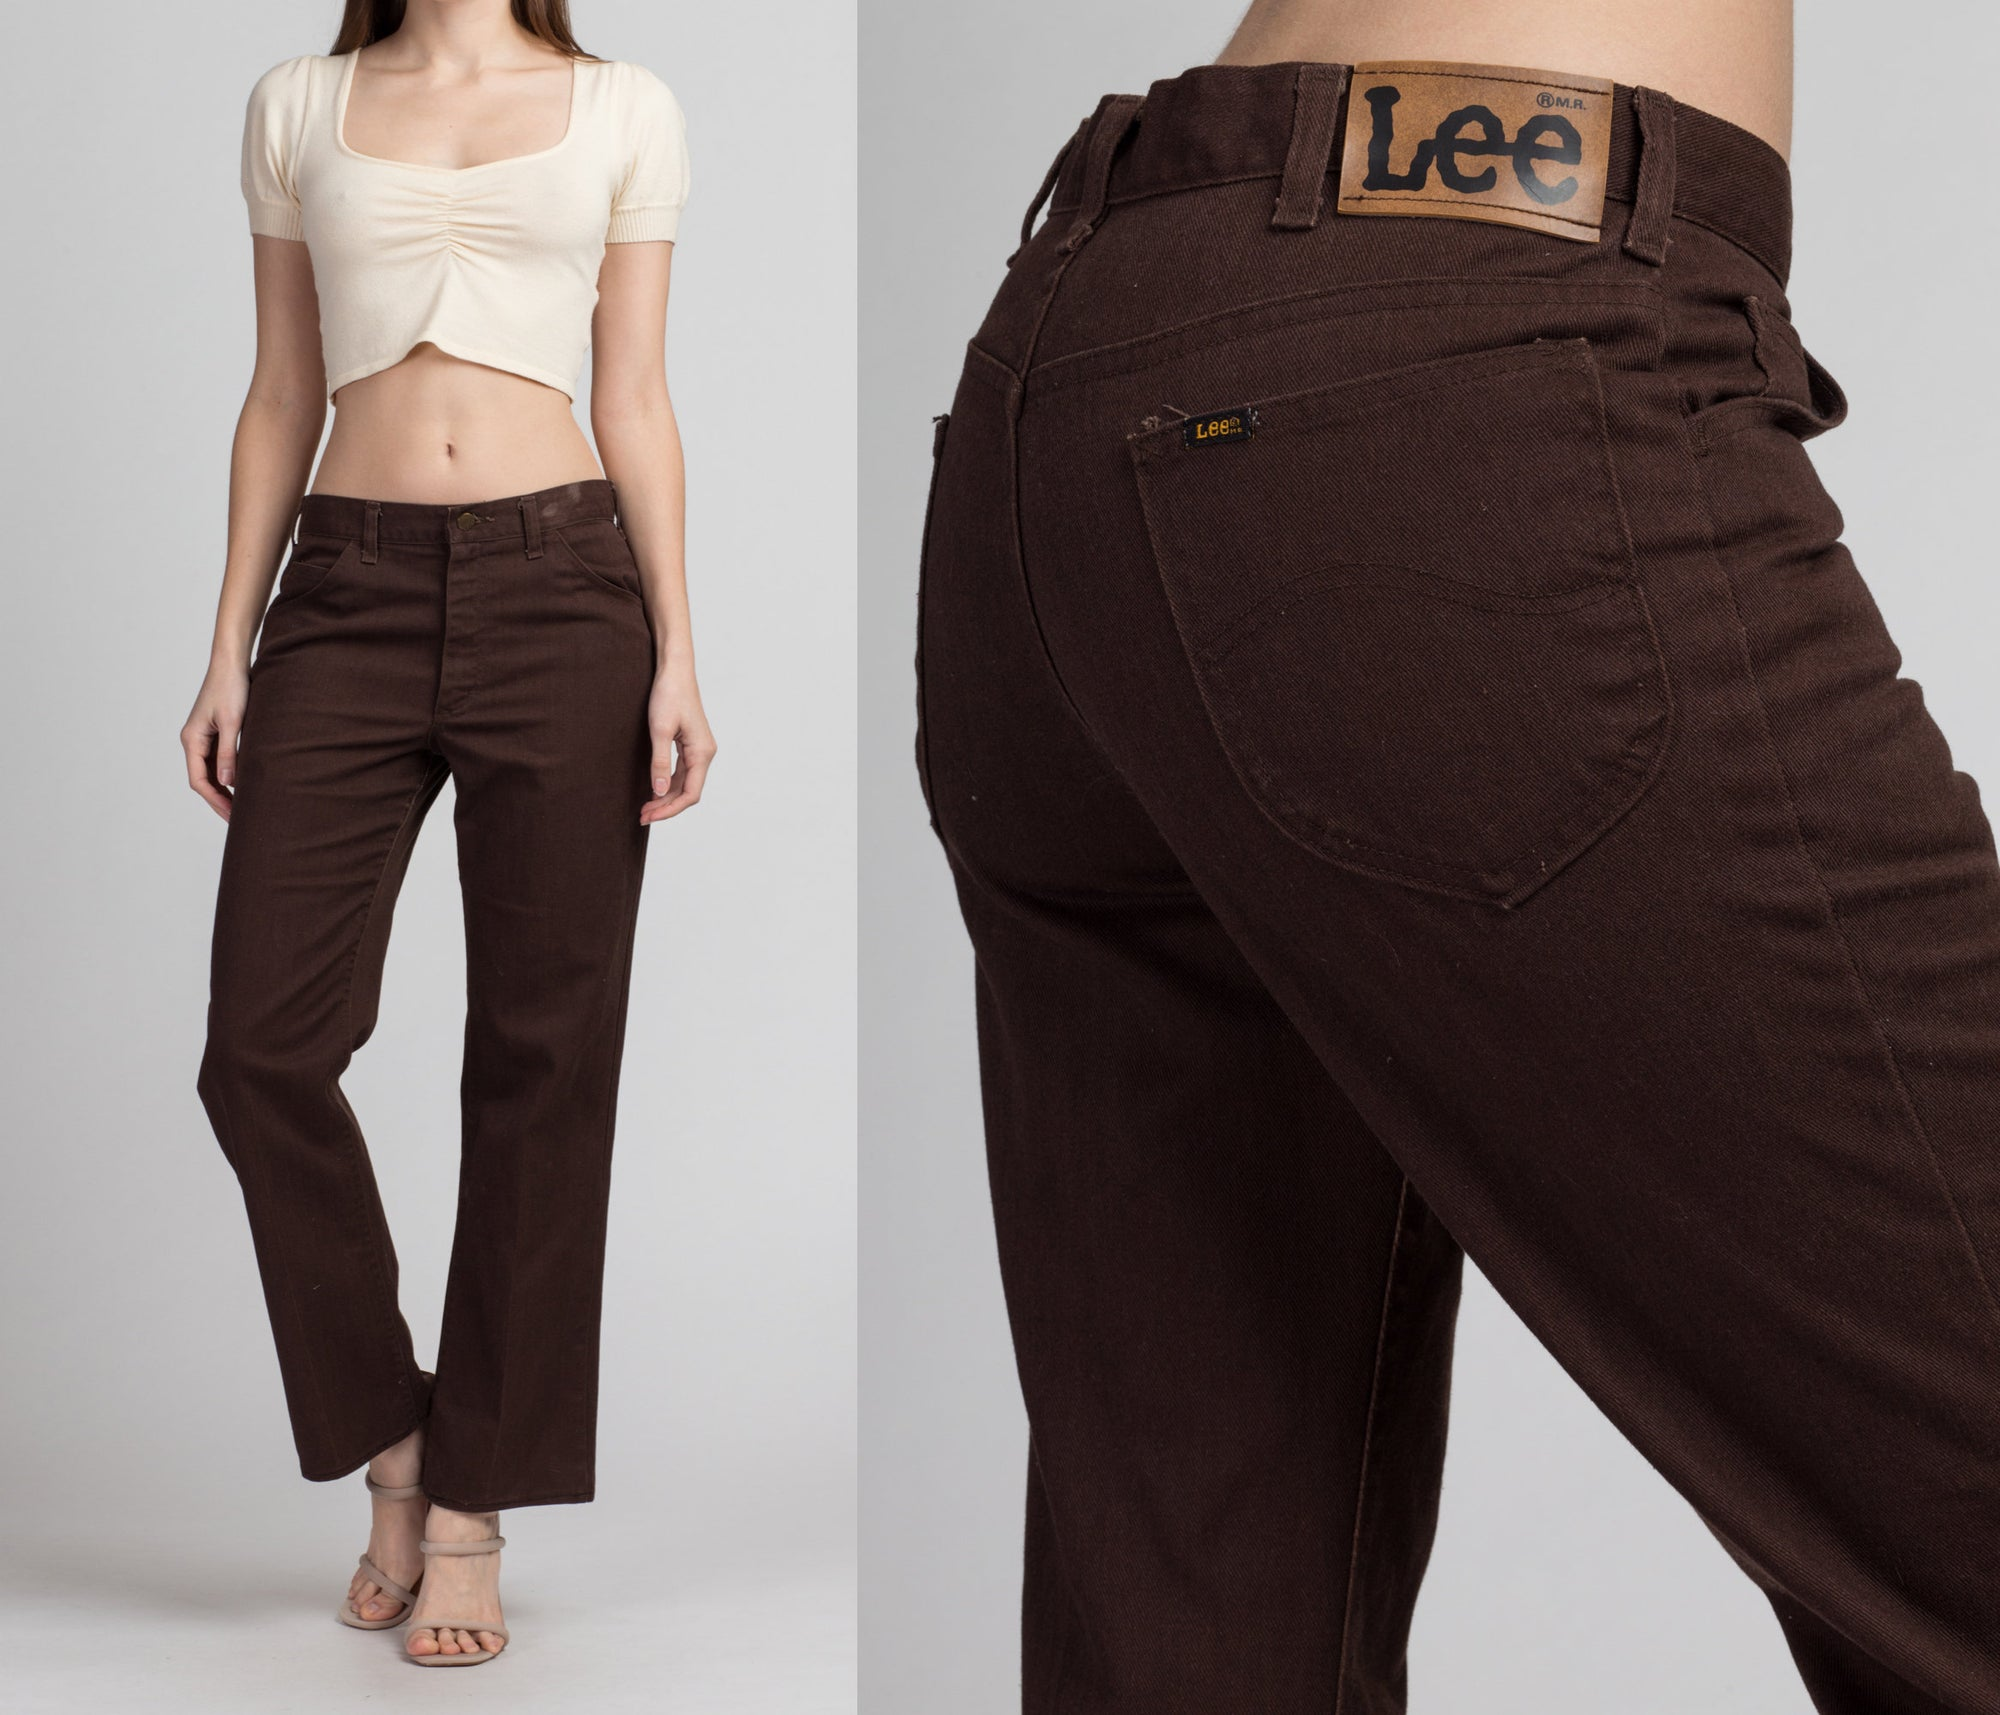 70s Lee Riders Dark Brown Jeans - Men's Small, 32"